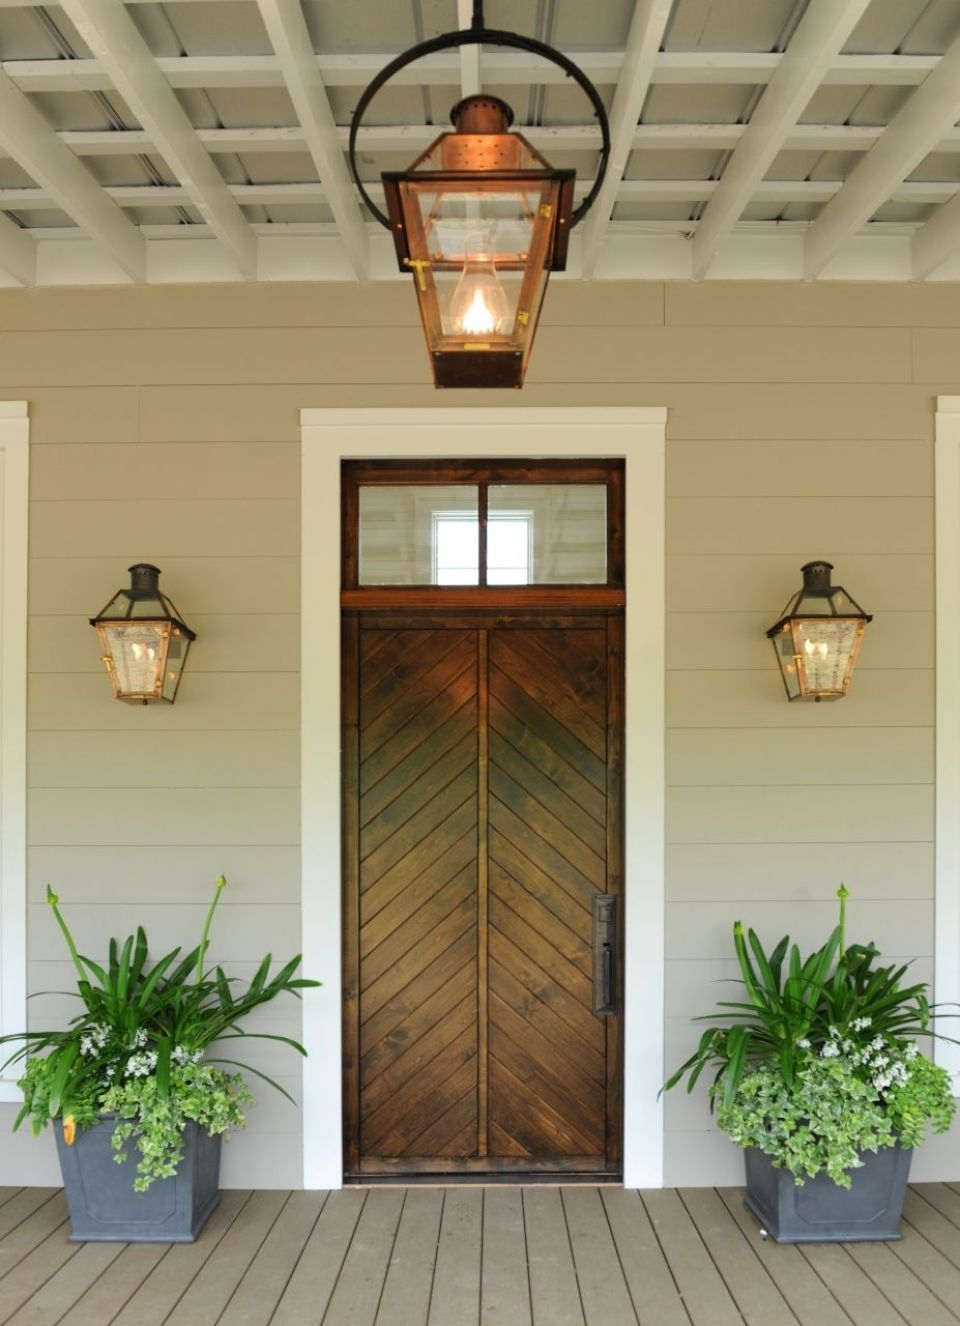 Copper Porch Light Fixtures Rustic Hanging – Teamns In Outdoor Hanging Gas Lights (View 4 of 15)